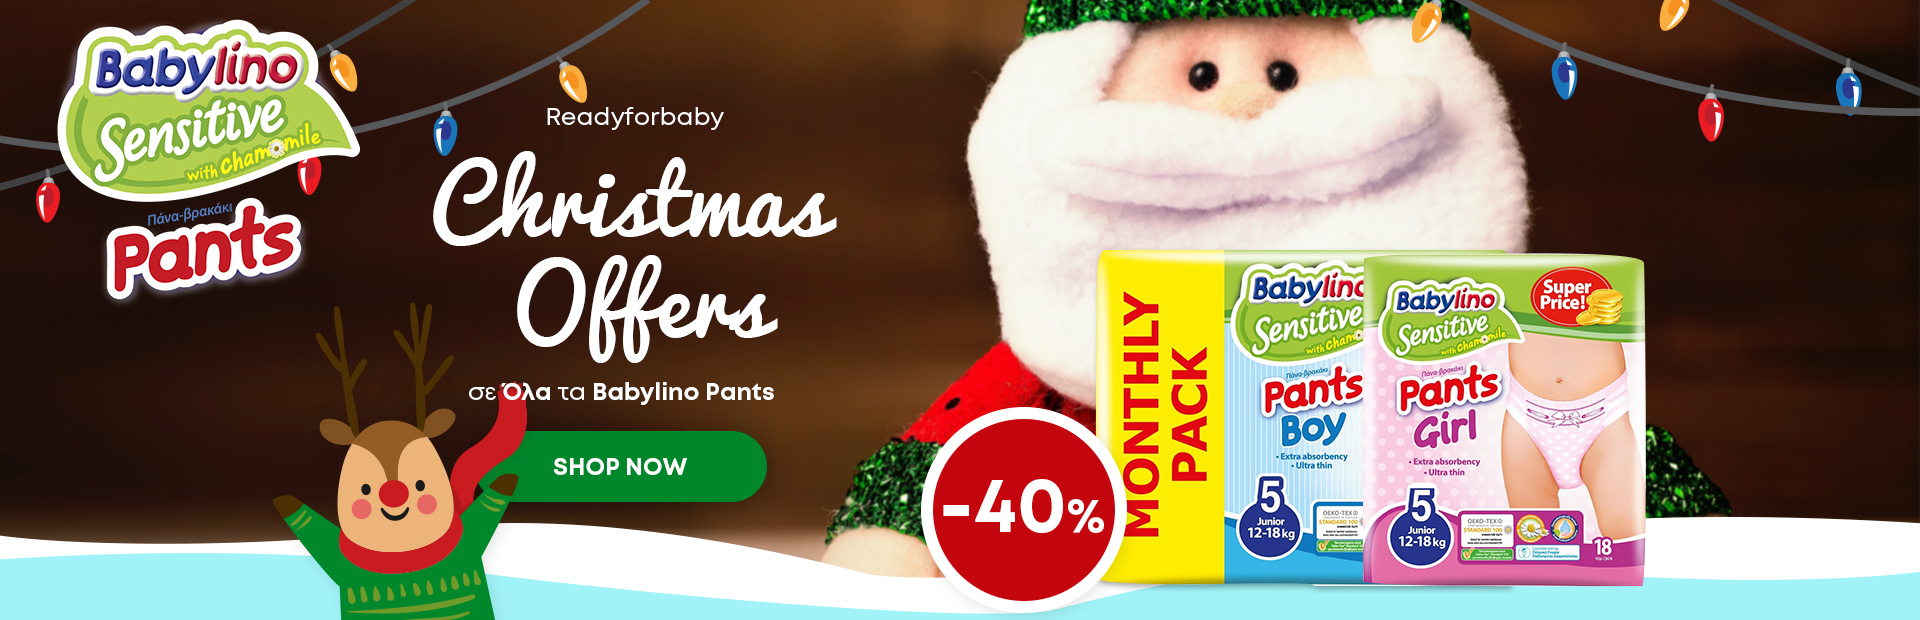 Christmas Offers Pack -40% pants